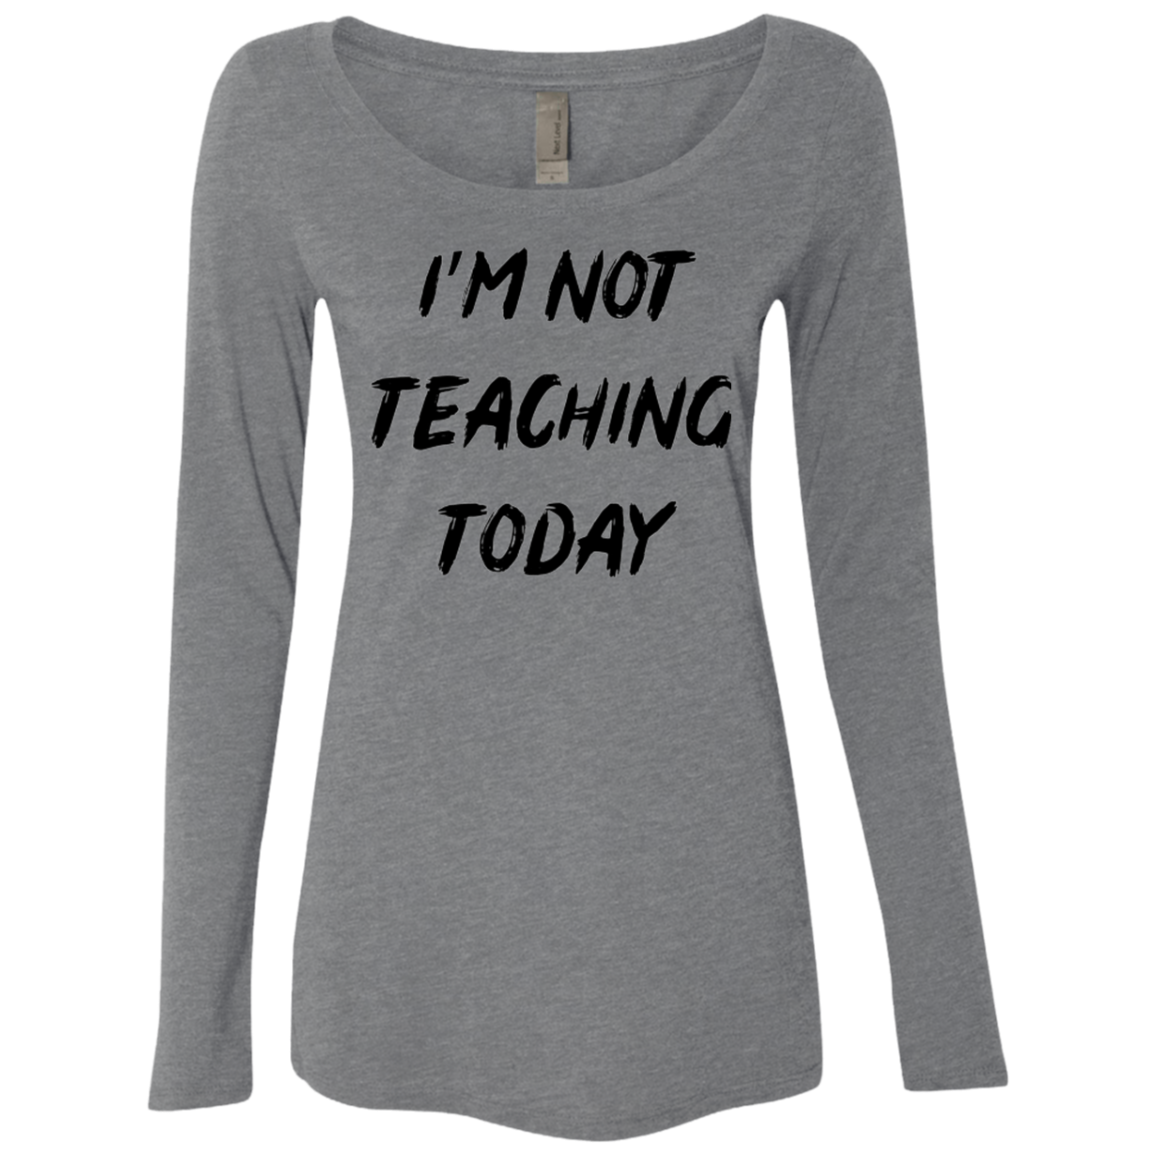 I'm Not Teaching Today Women's Long Sleeve Tee - Trendy Tees